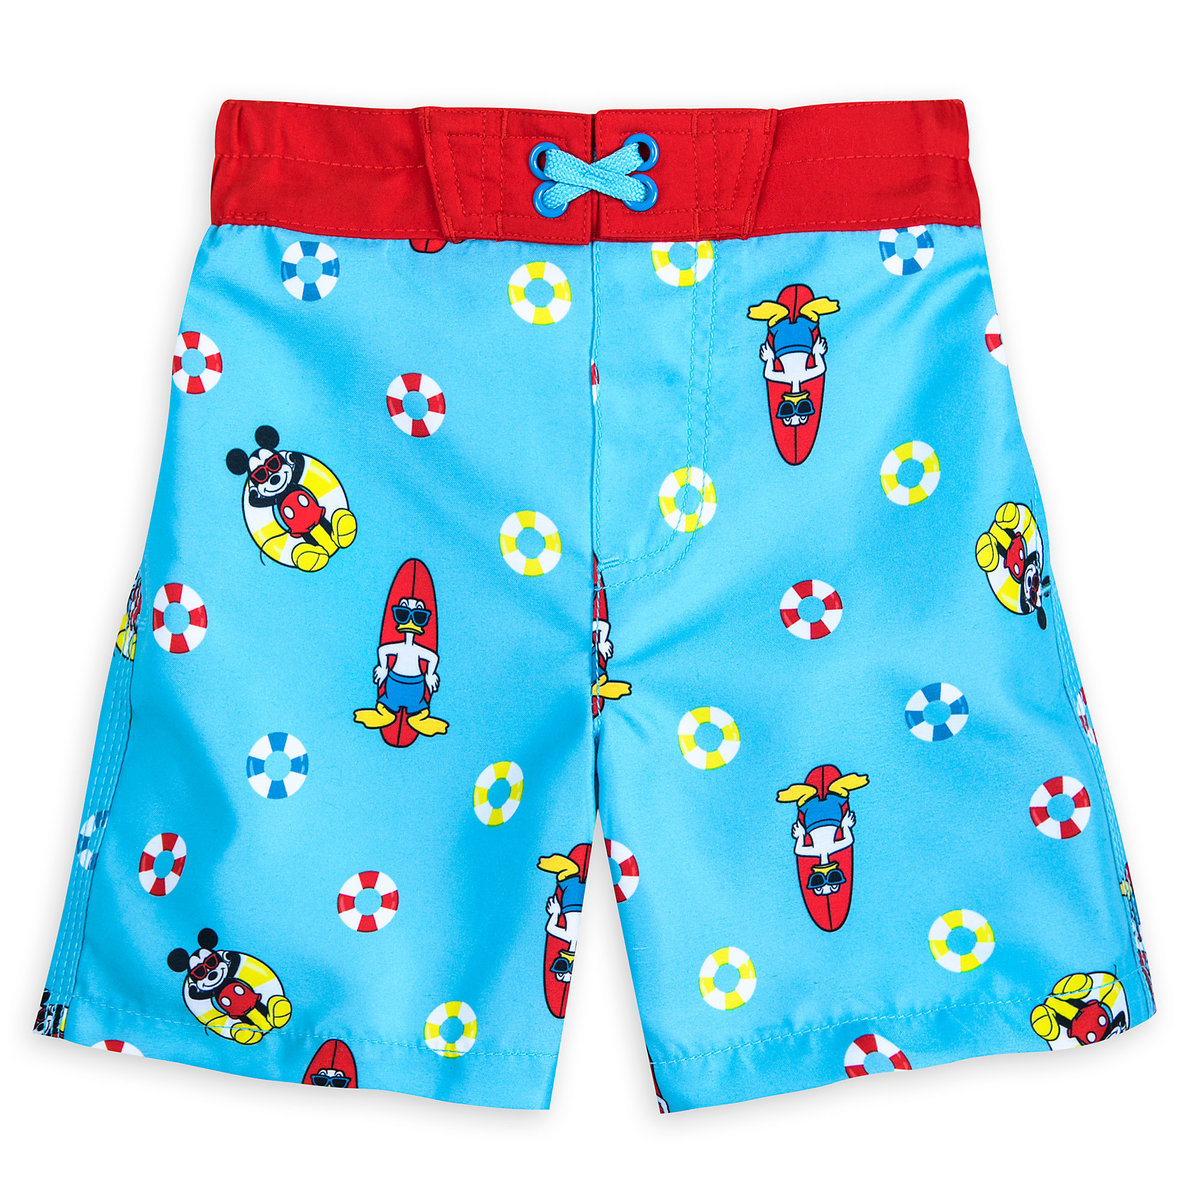 b4d815530bb4 Product Image of Mickey Mouse and Donald Duck Swim Trunks for Boys # 1